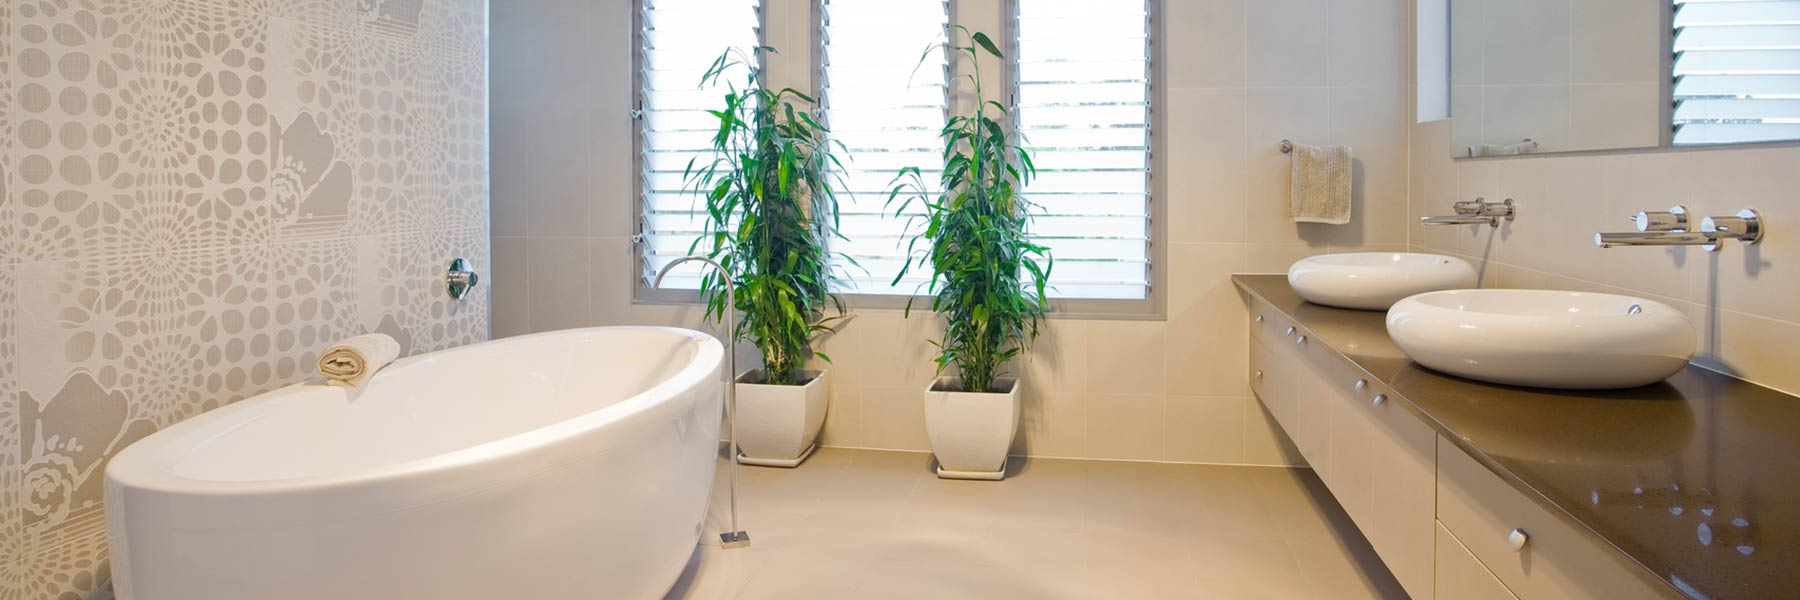 San Jose Bathroom Remodeling